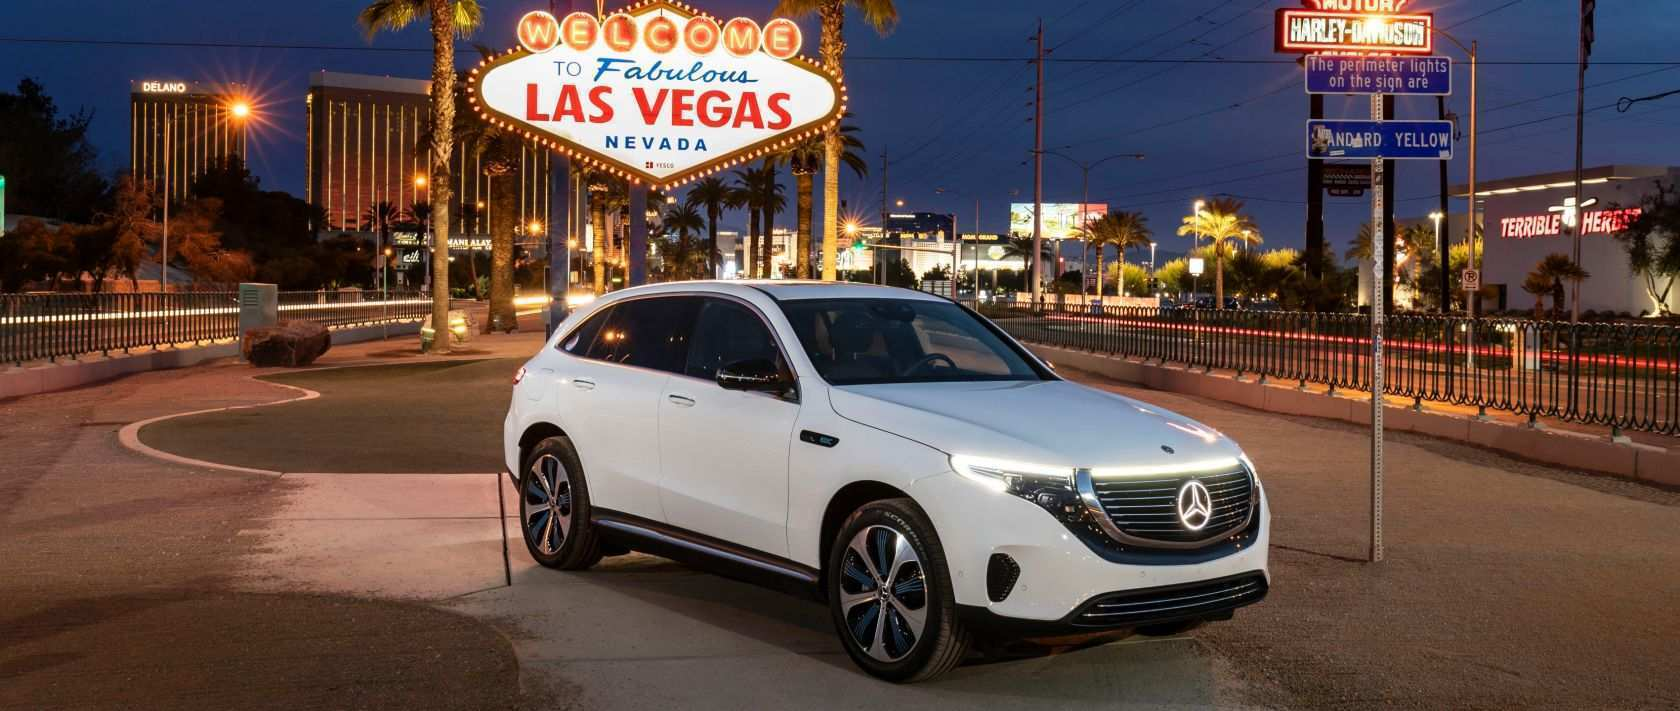 36 The Best Eqc Mercedes 2019 Price And Review